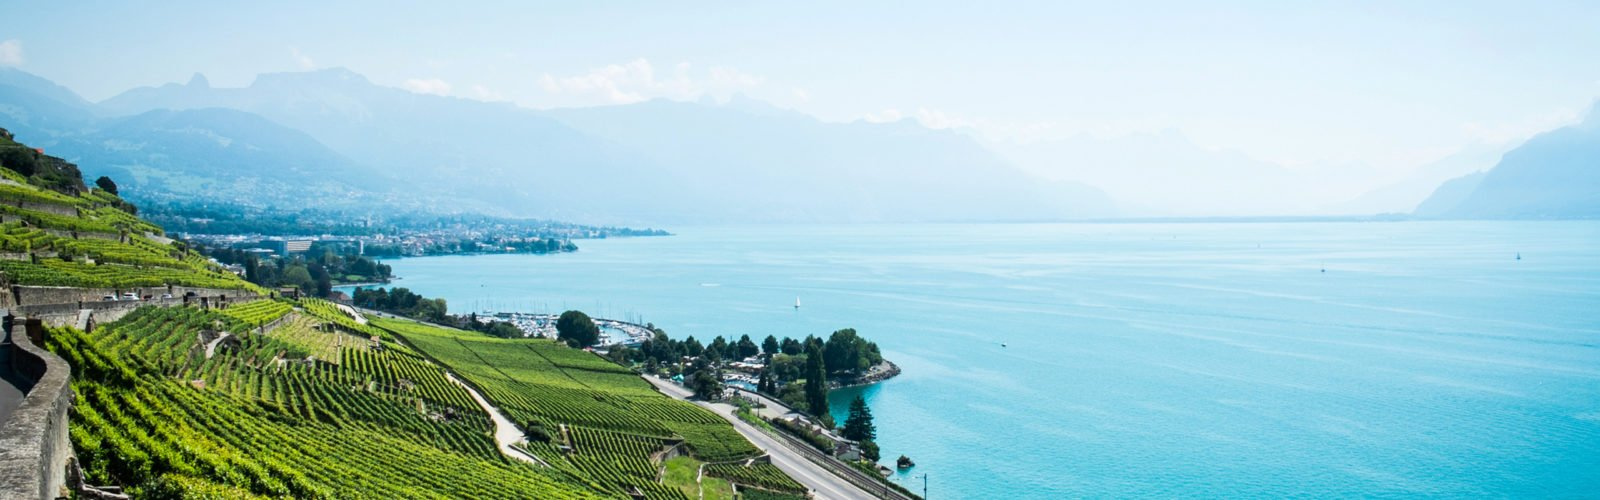 montreux-vineyards